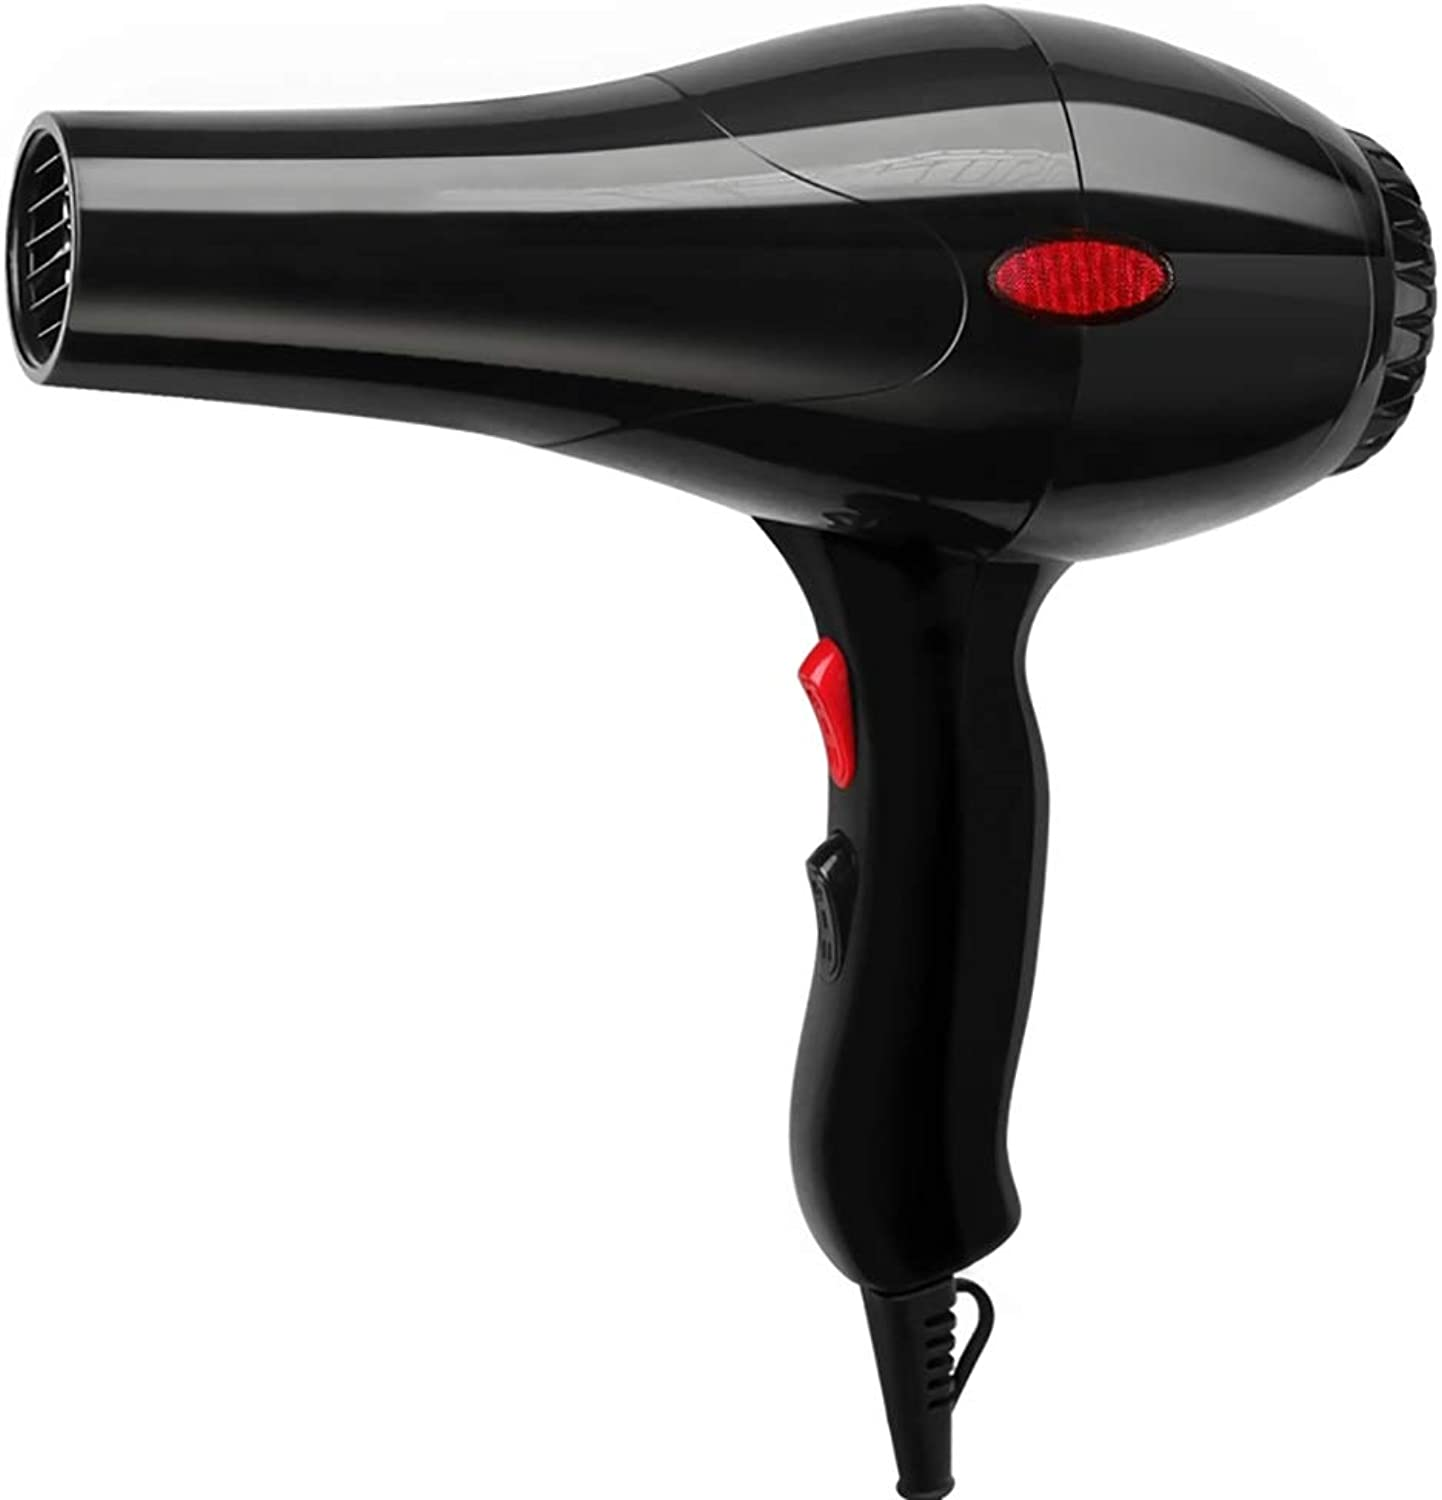 Hair Dryer pet Dryer high Power Household Hair Dryer ABC Material Silent Constant Temperature 4 Wind Dedicated to pet Stores